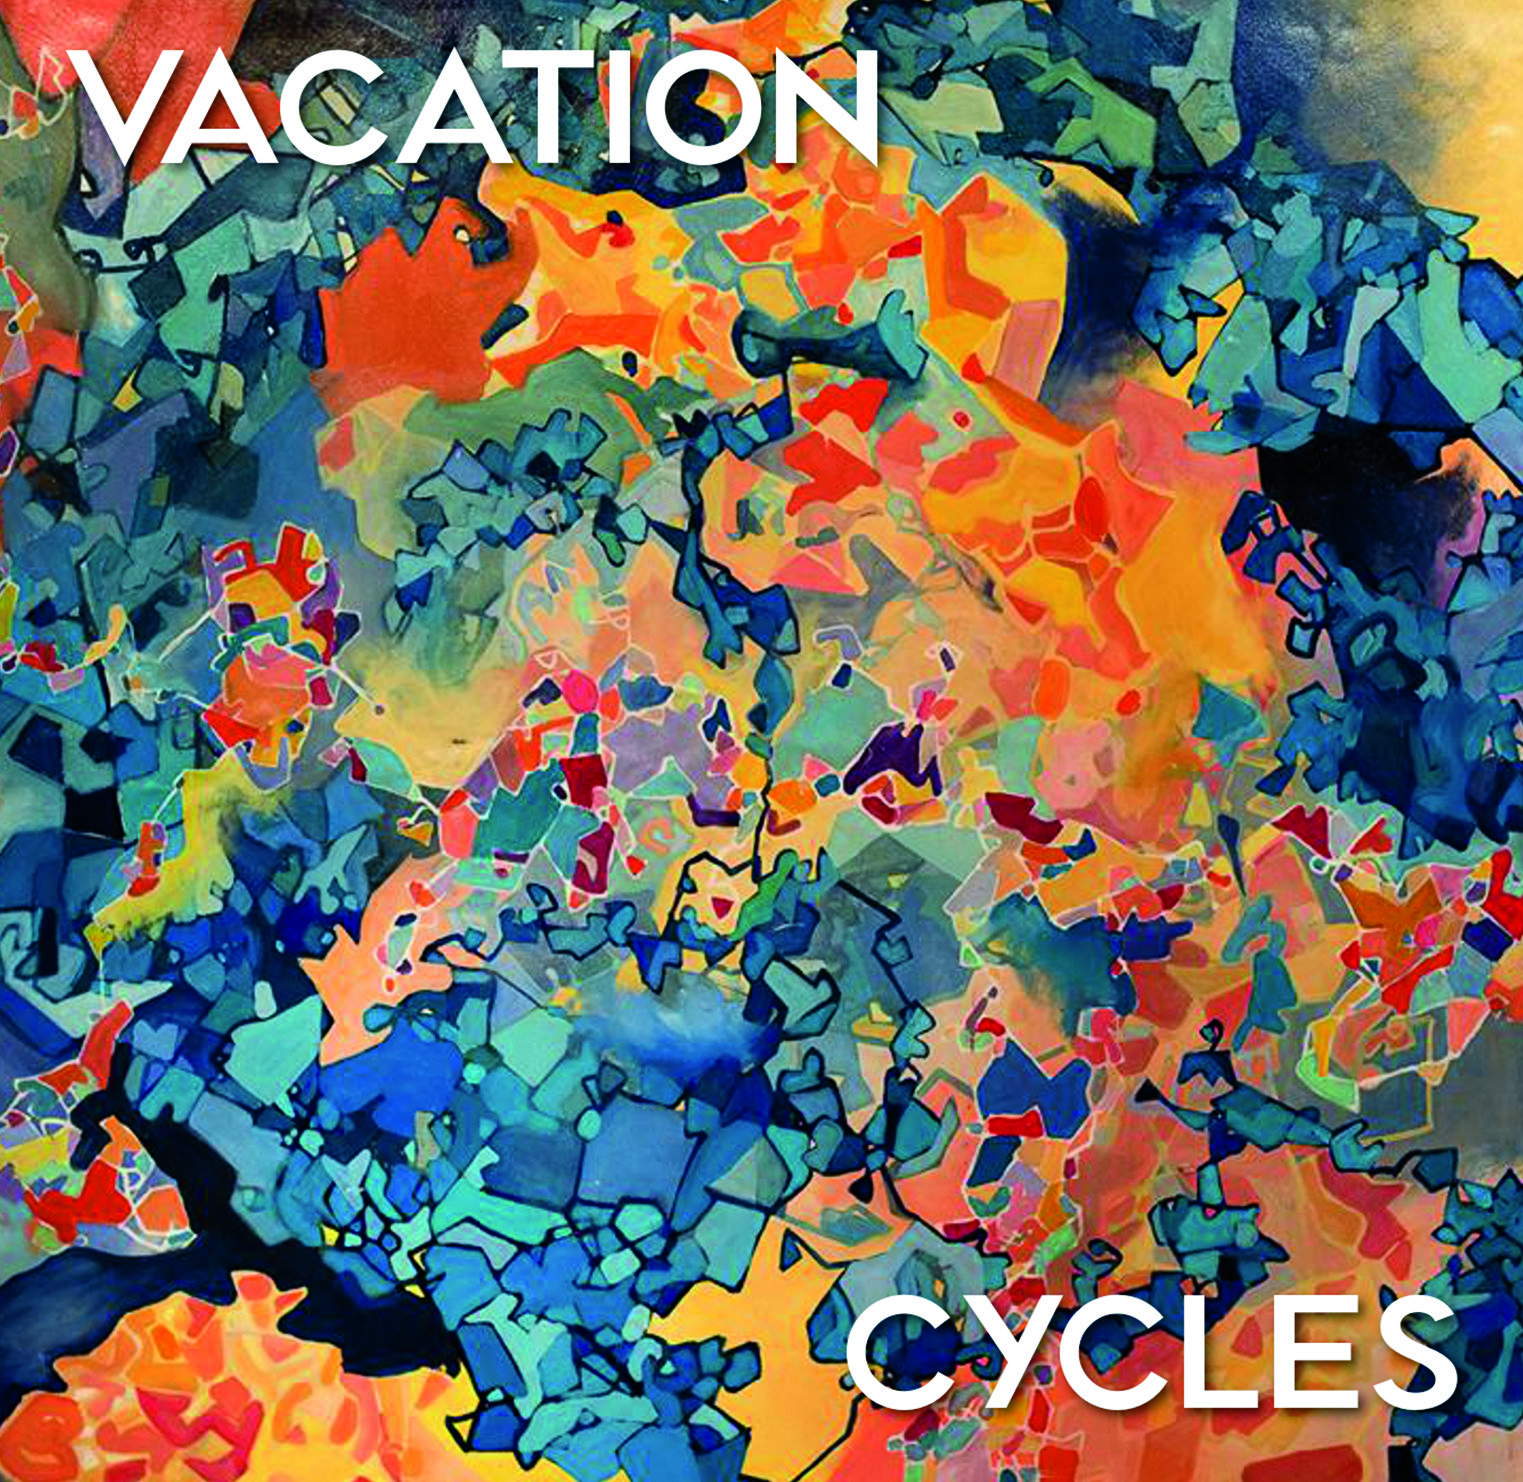 CYCLES - VACATION (Physical CD) 00001